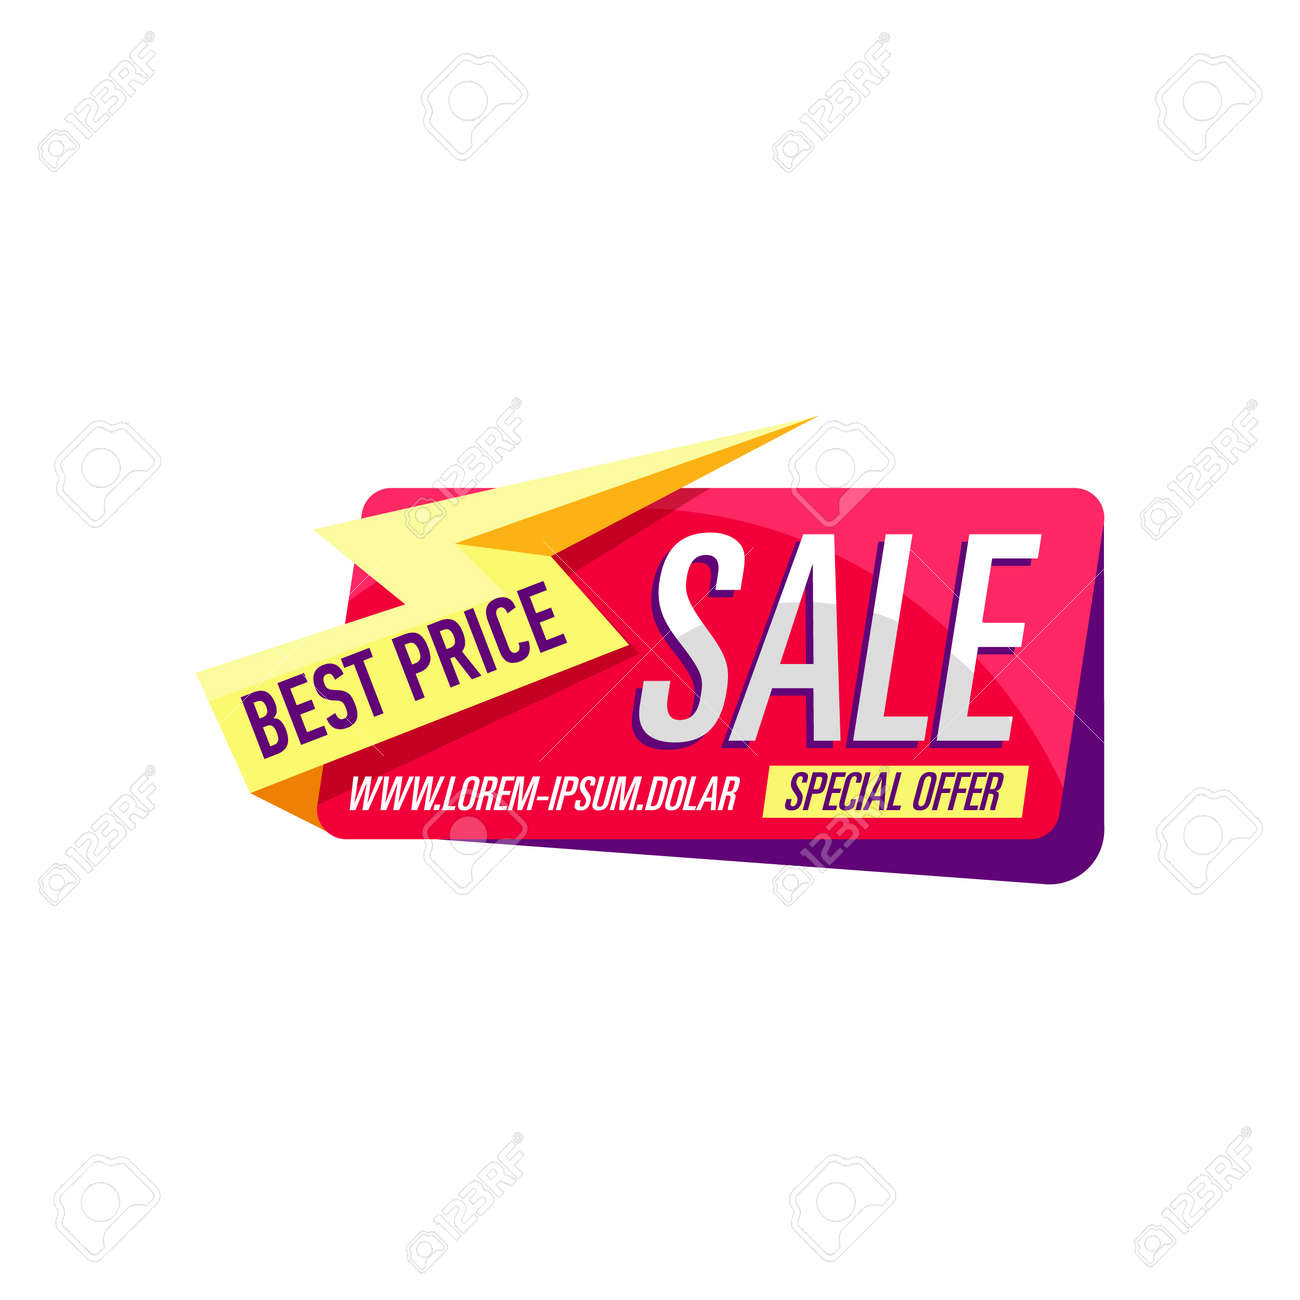 Best Price Sticker Isolated On White Background Retail Marketing Royalty Free Cliparts Vectors And Stock Illustration Image 95458575